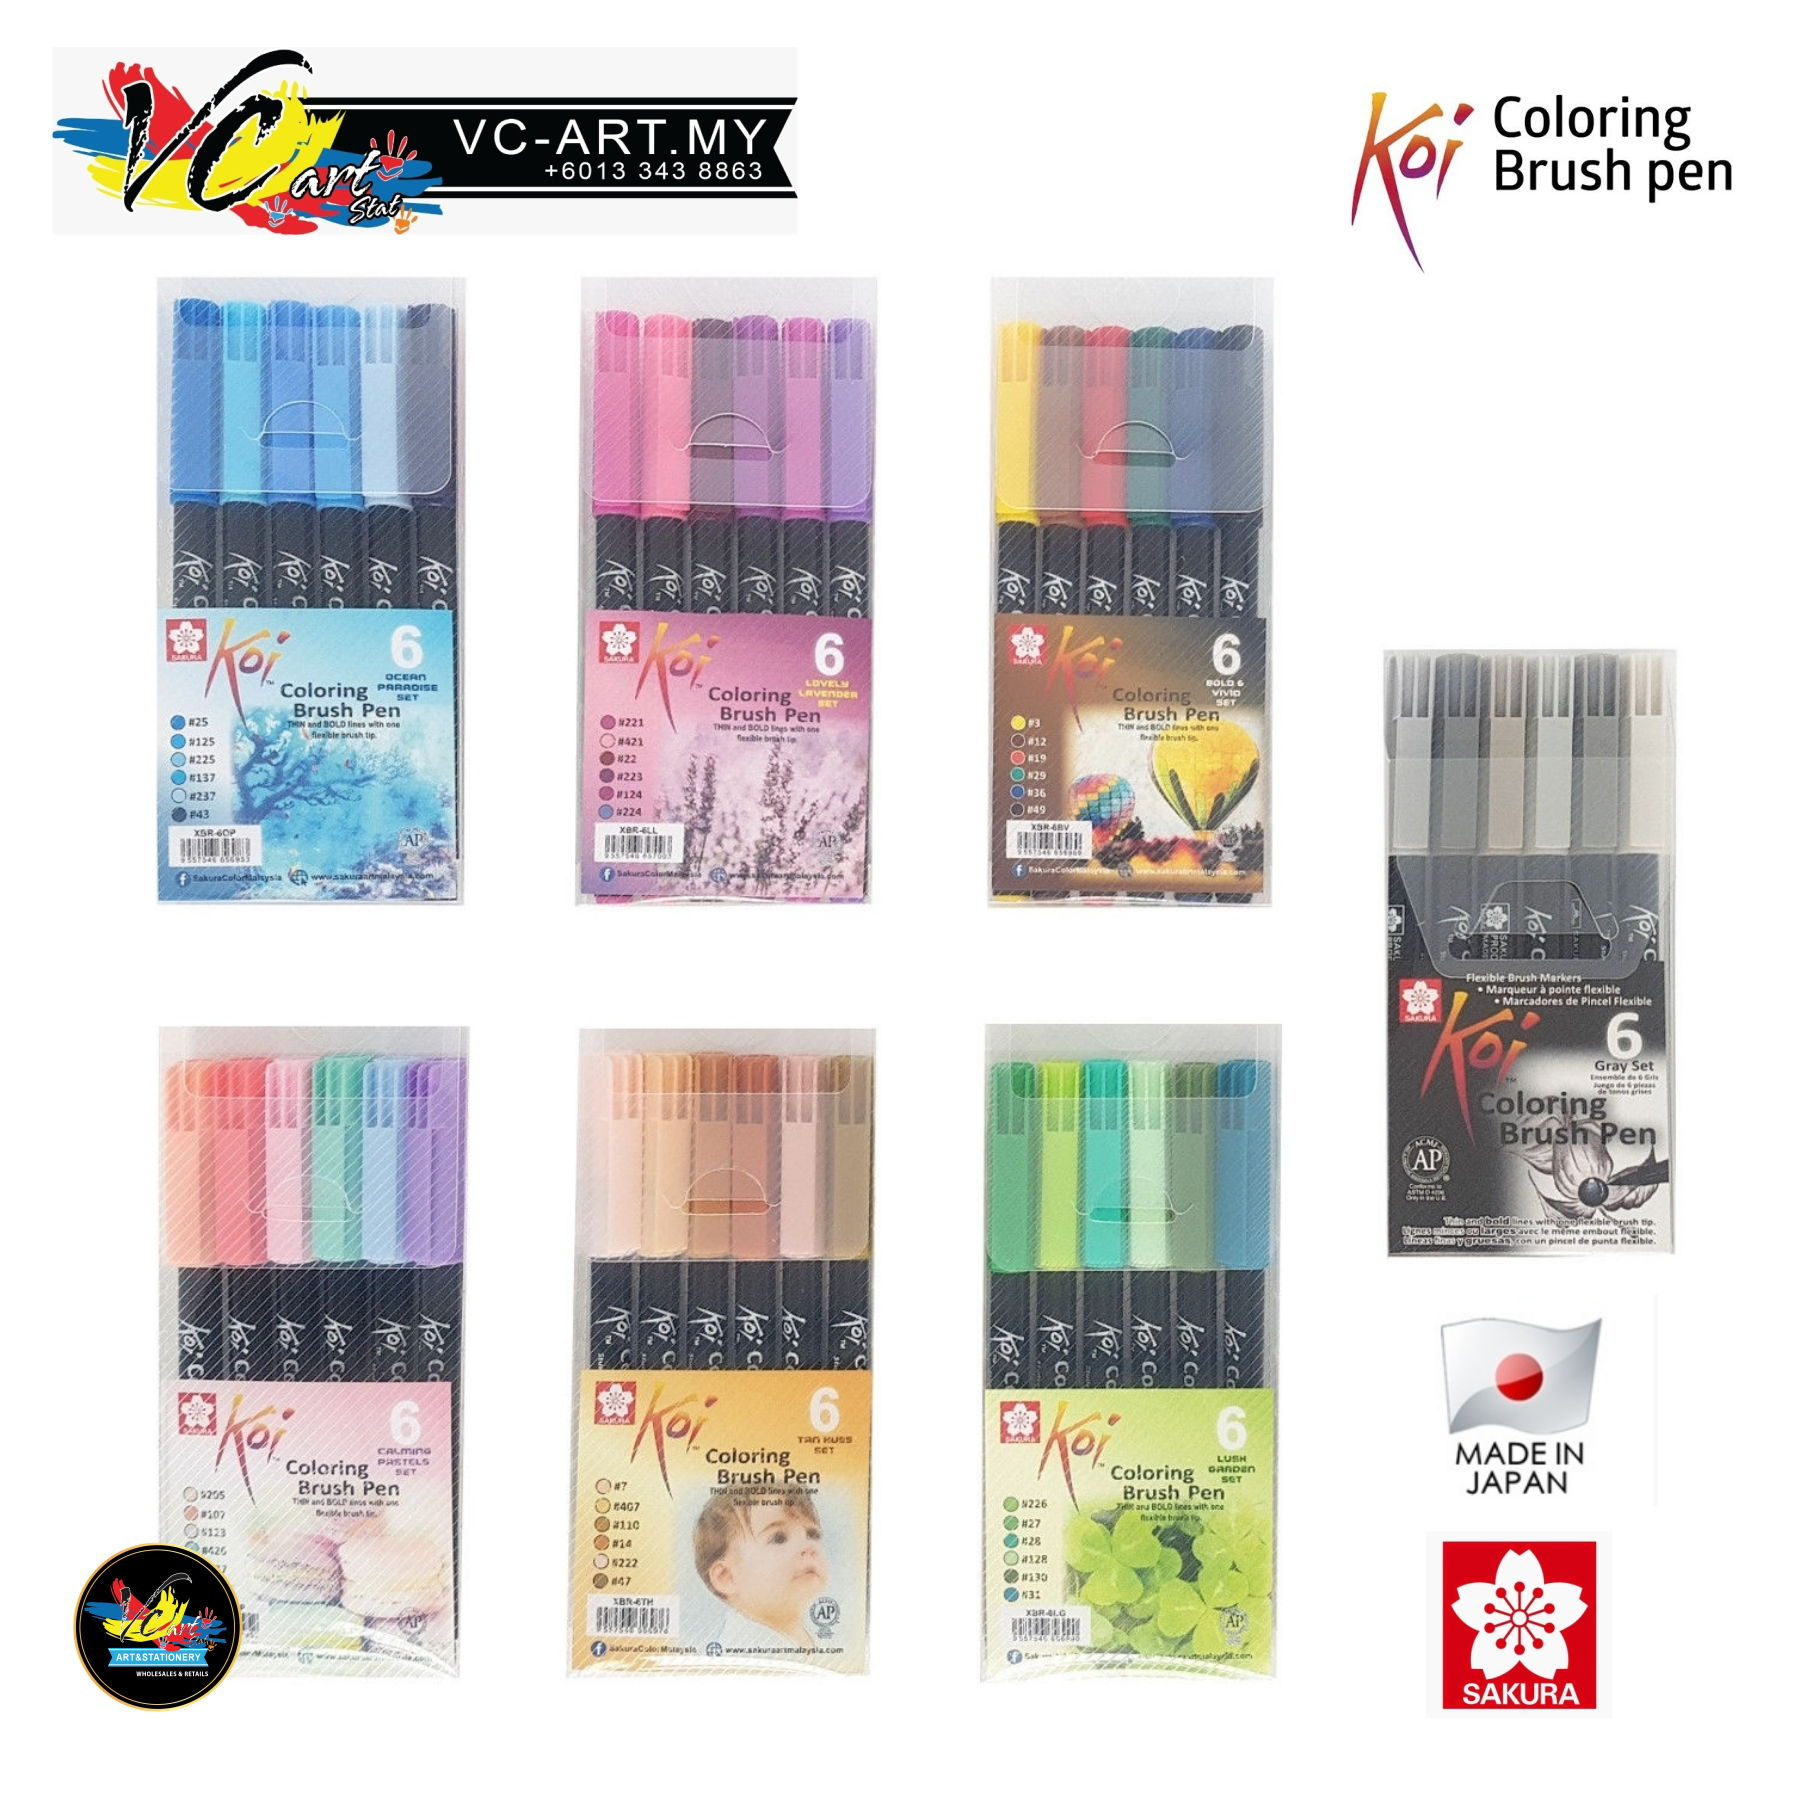 Sakura Koi Coloring Brush Pen, Pack (end 4/12/2021 12:00 AM)